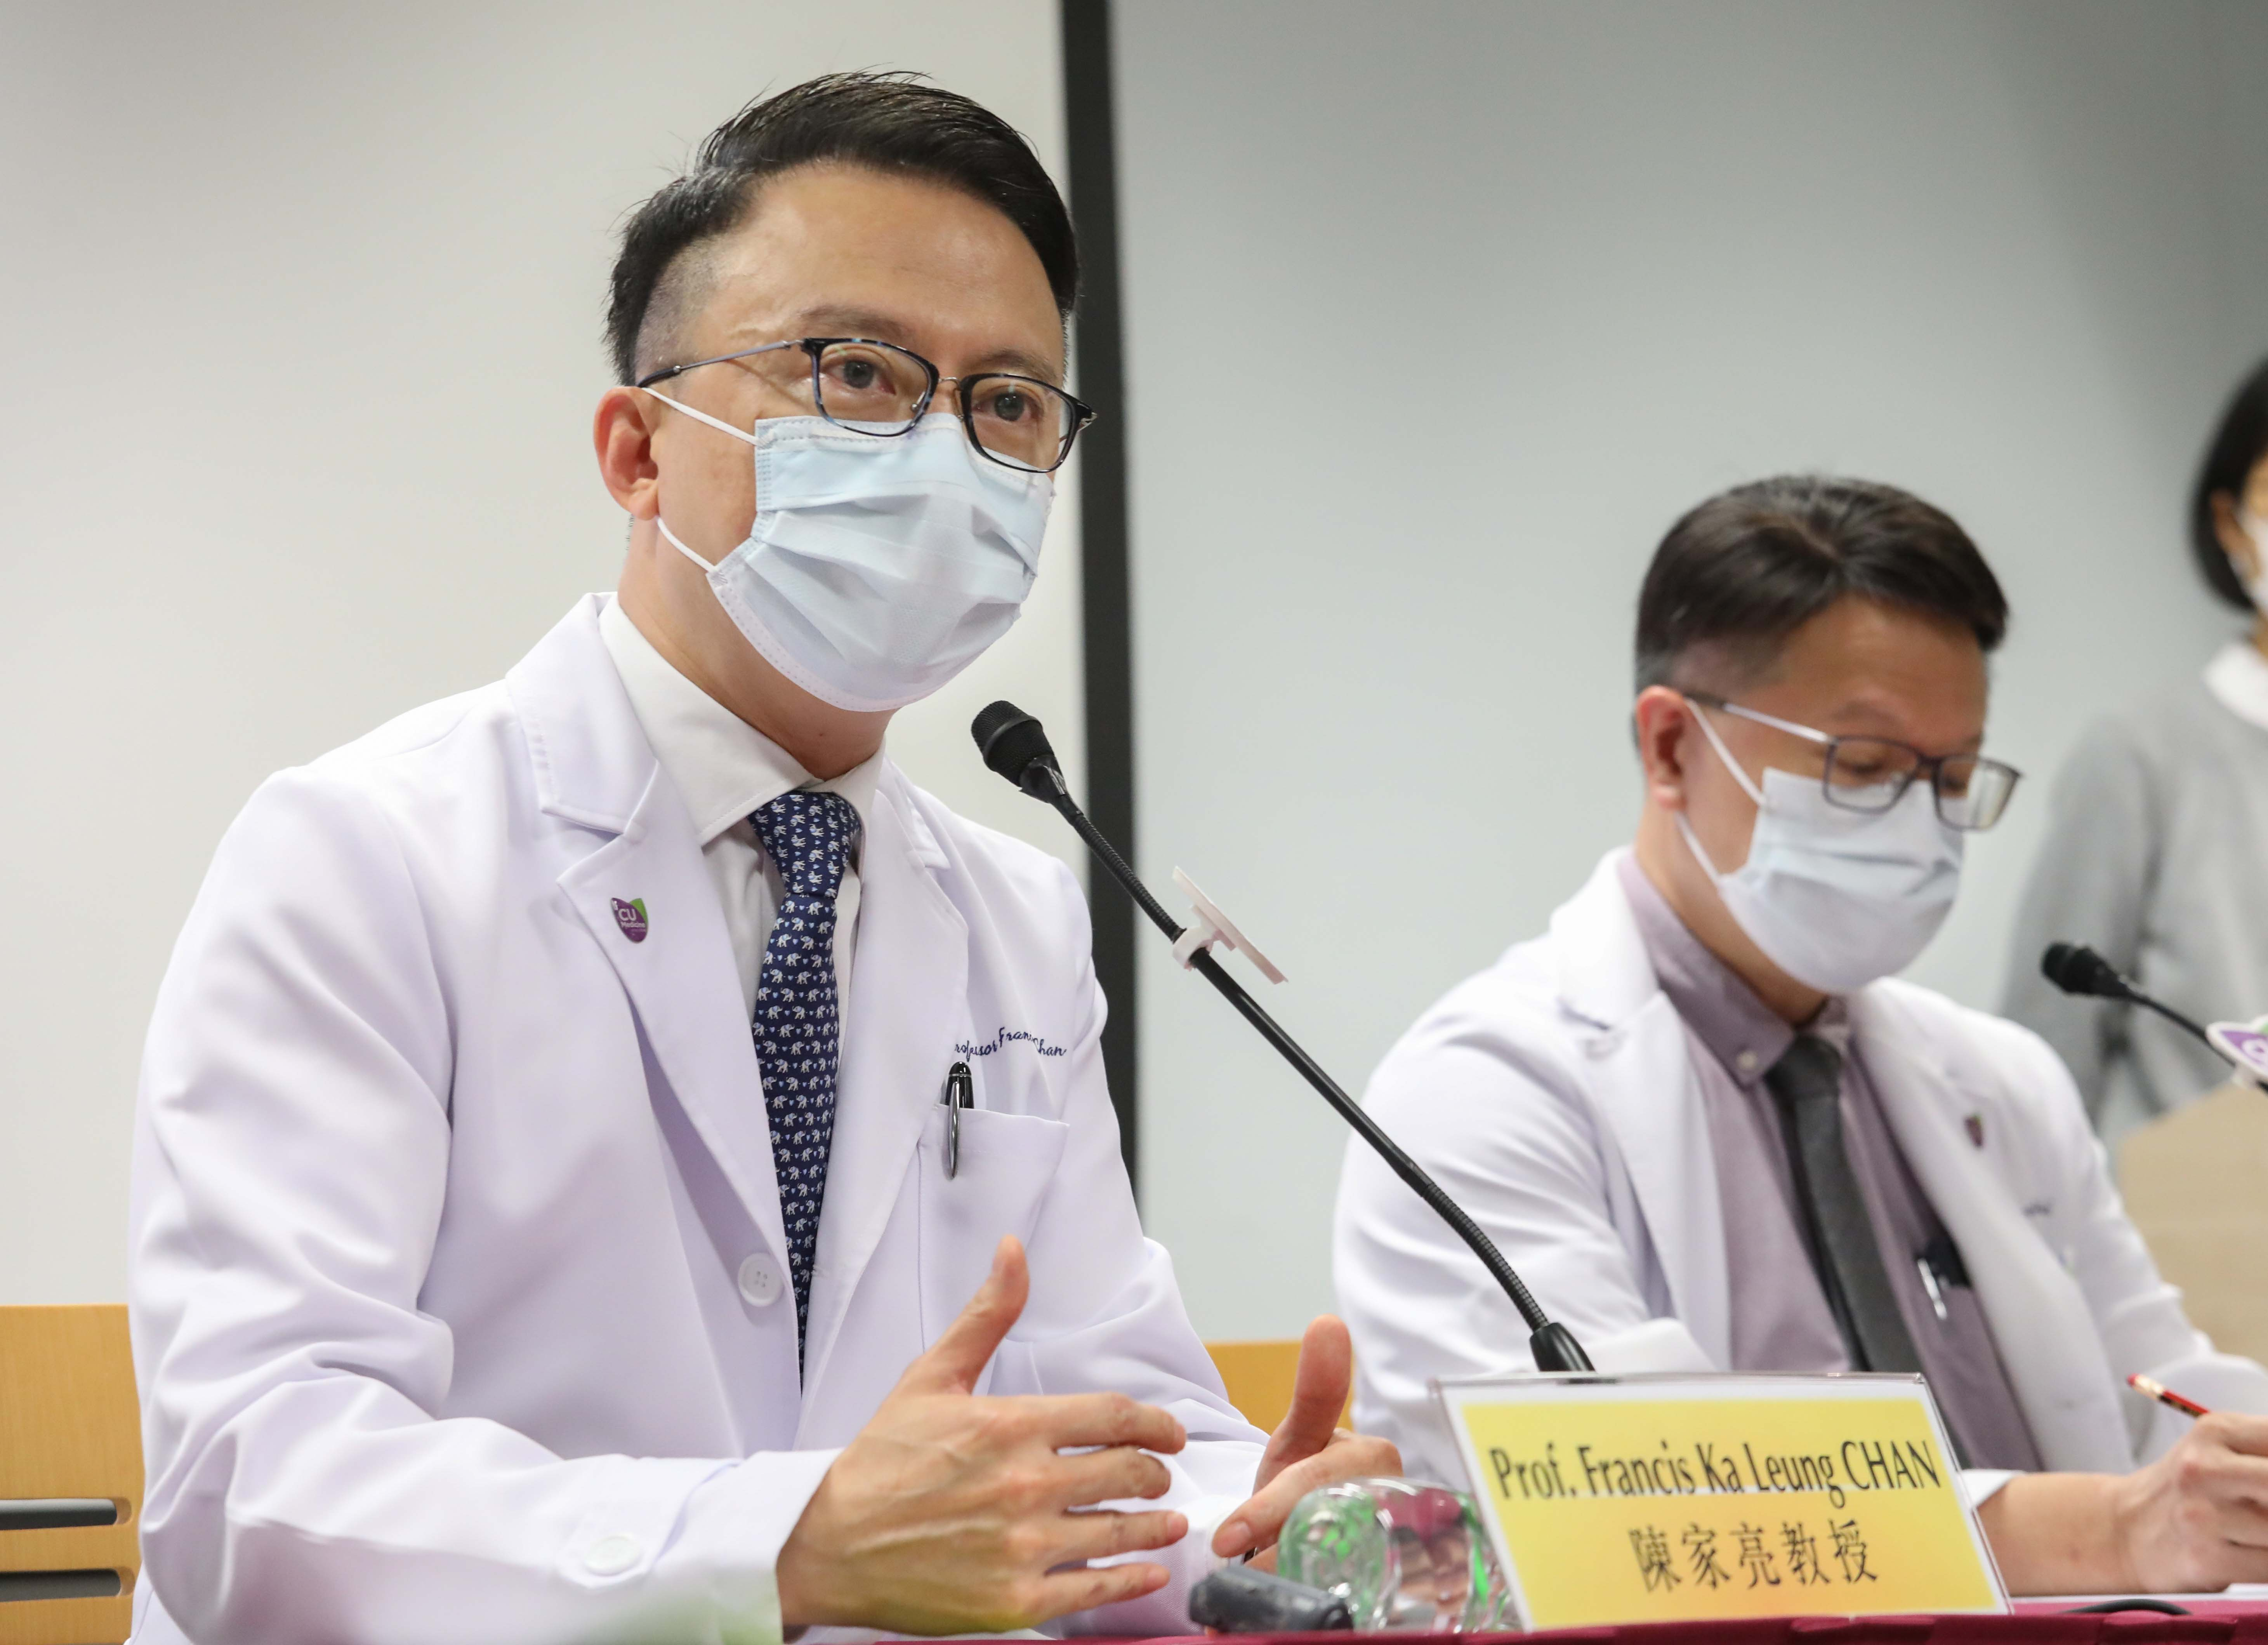 Prof. Francis CHAN reminds the public that virus shedding in stool may impose health hazard to others. Caretakers and food handlers should be particularly vigilant about their hand hygiene.